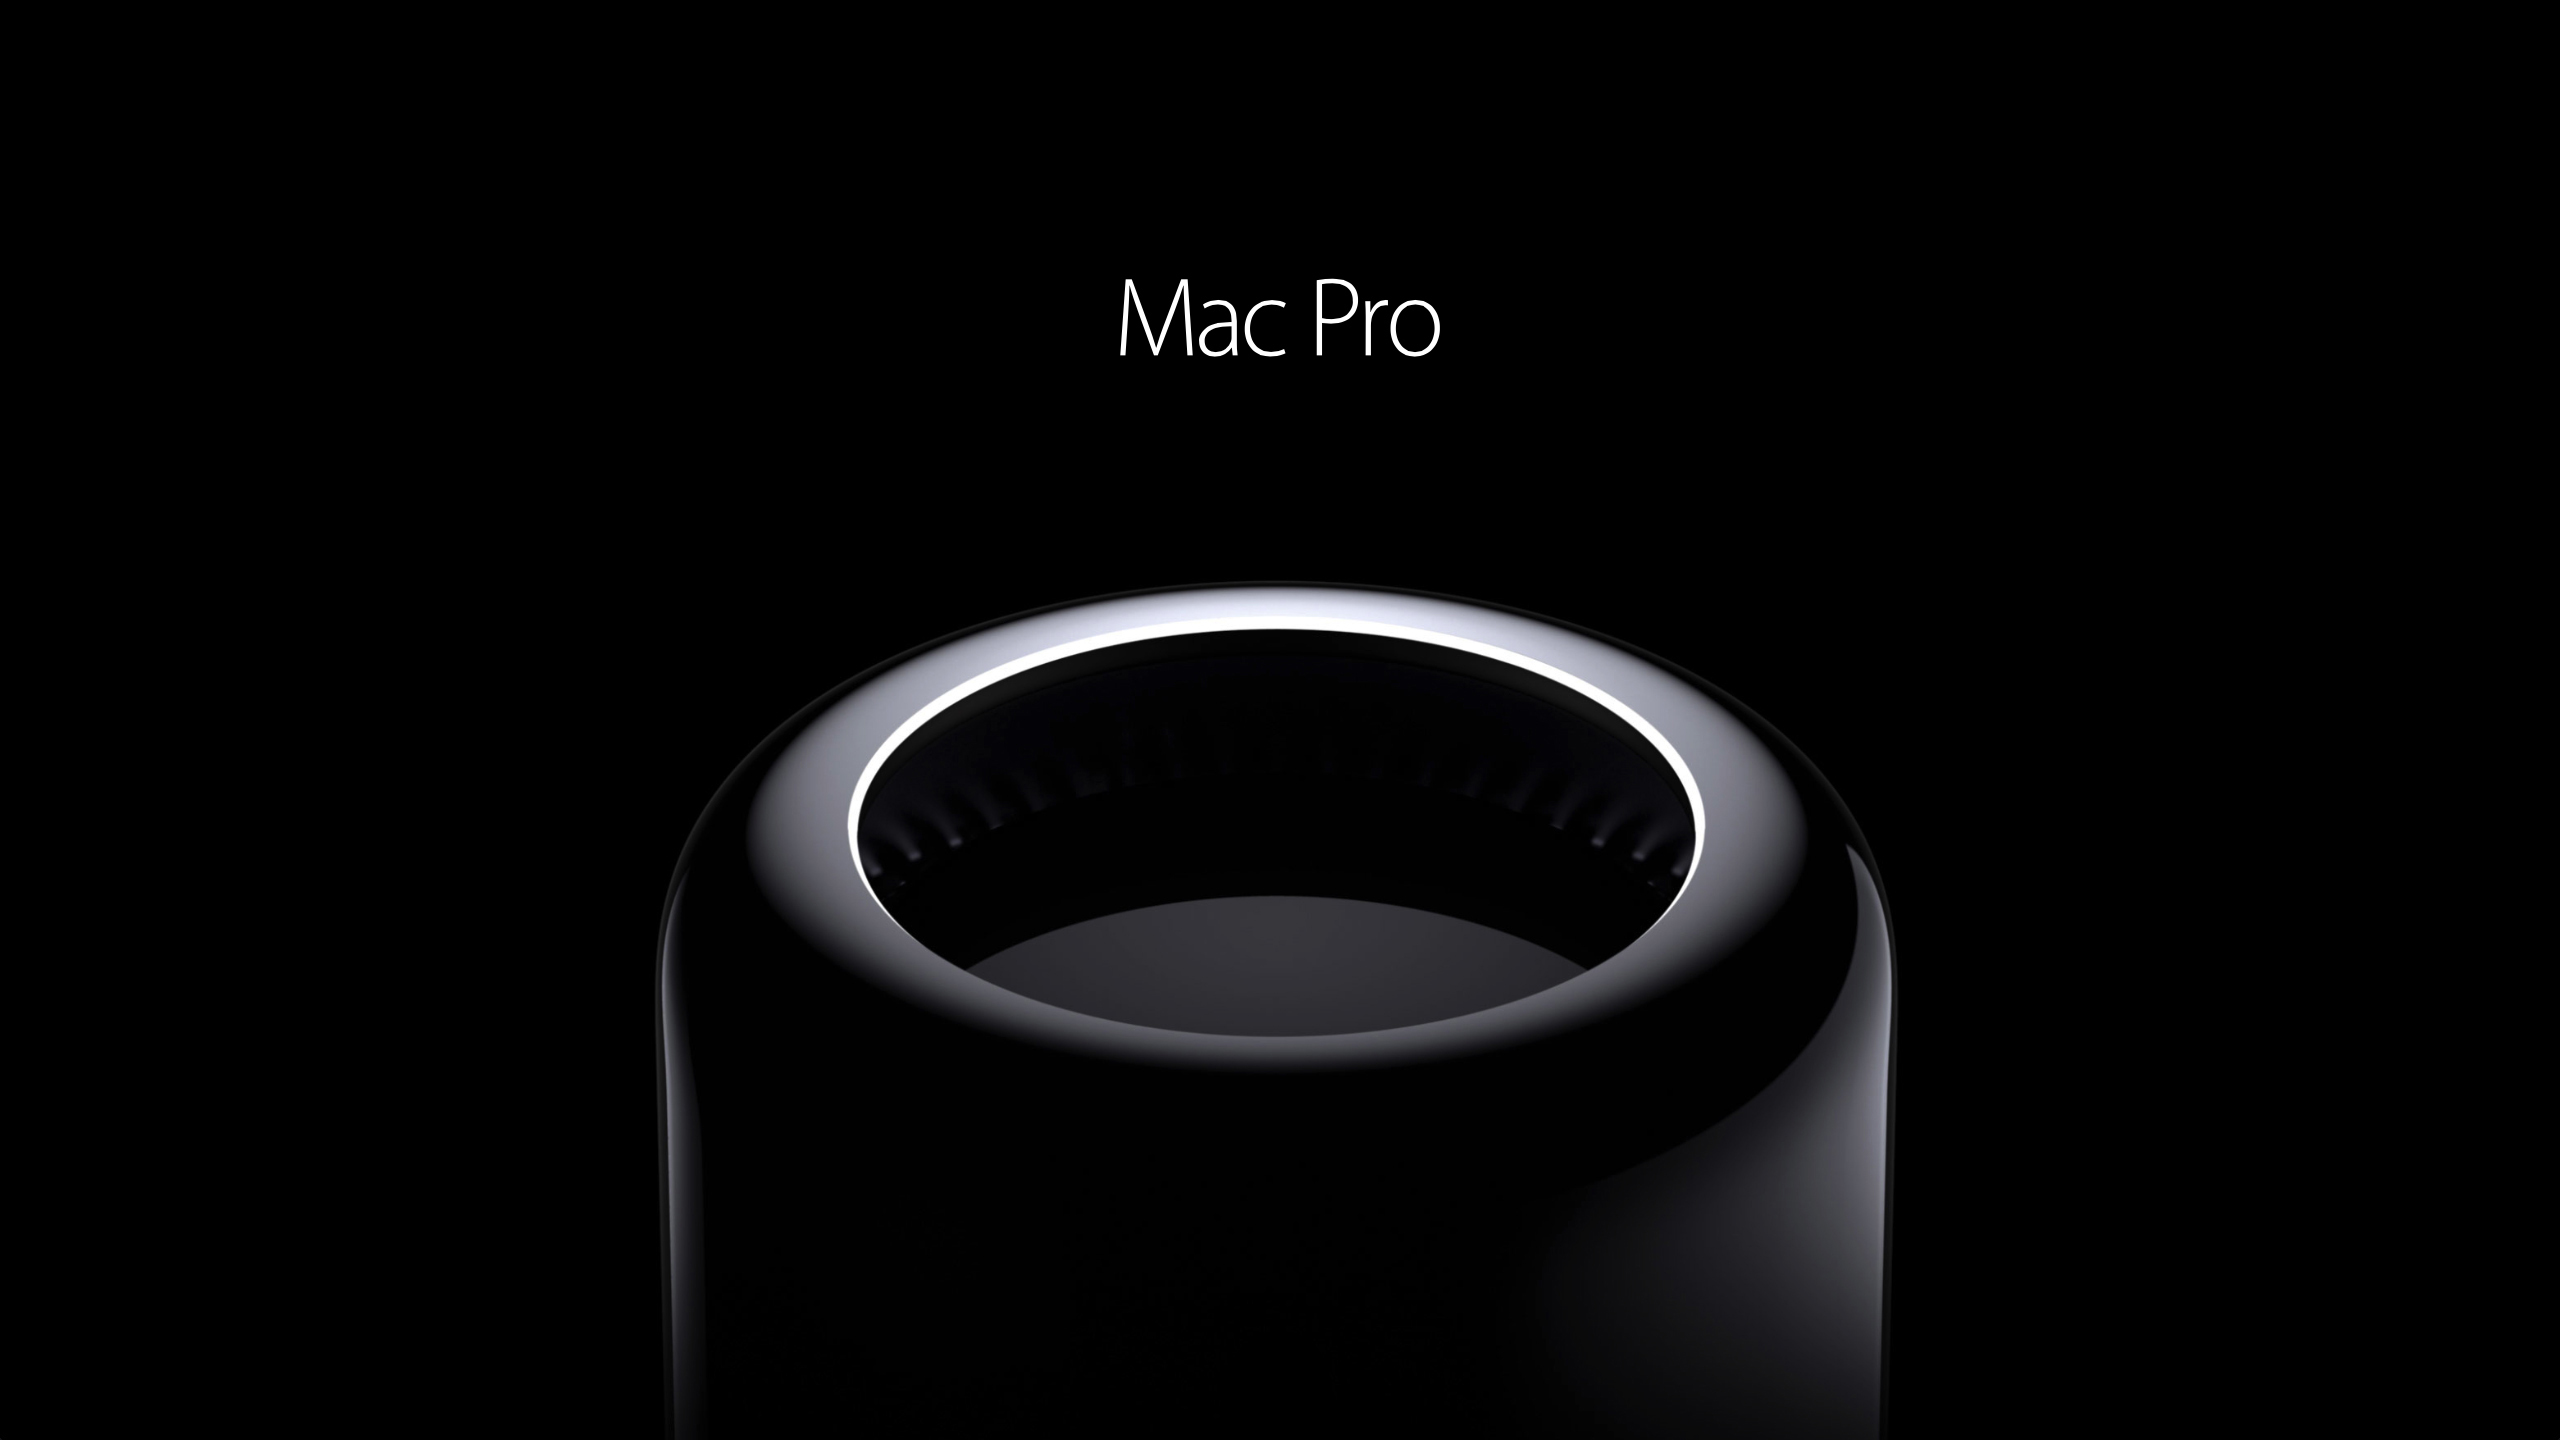 Apple wallpaper Mac Pro 2014 gloss black black background a new 2560x1440